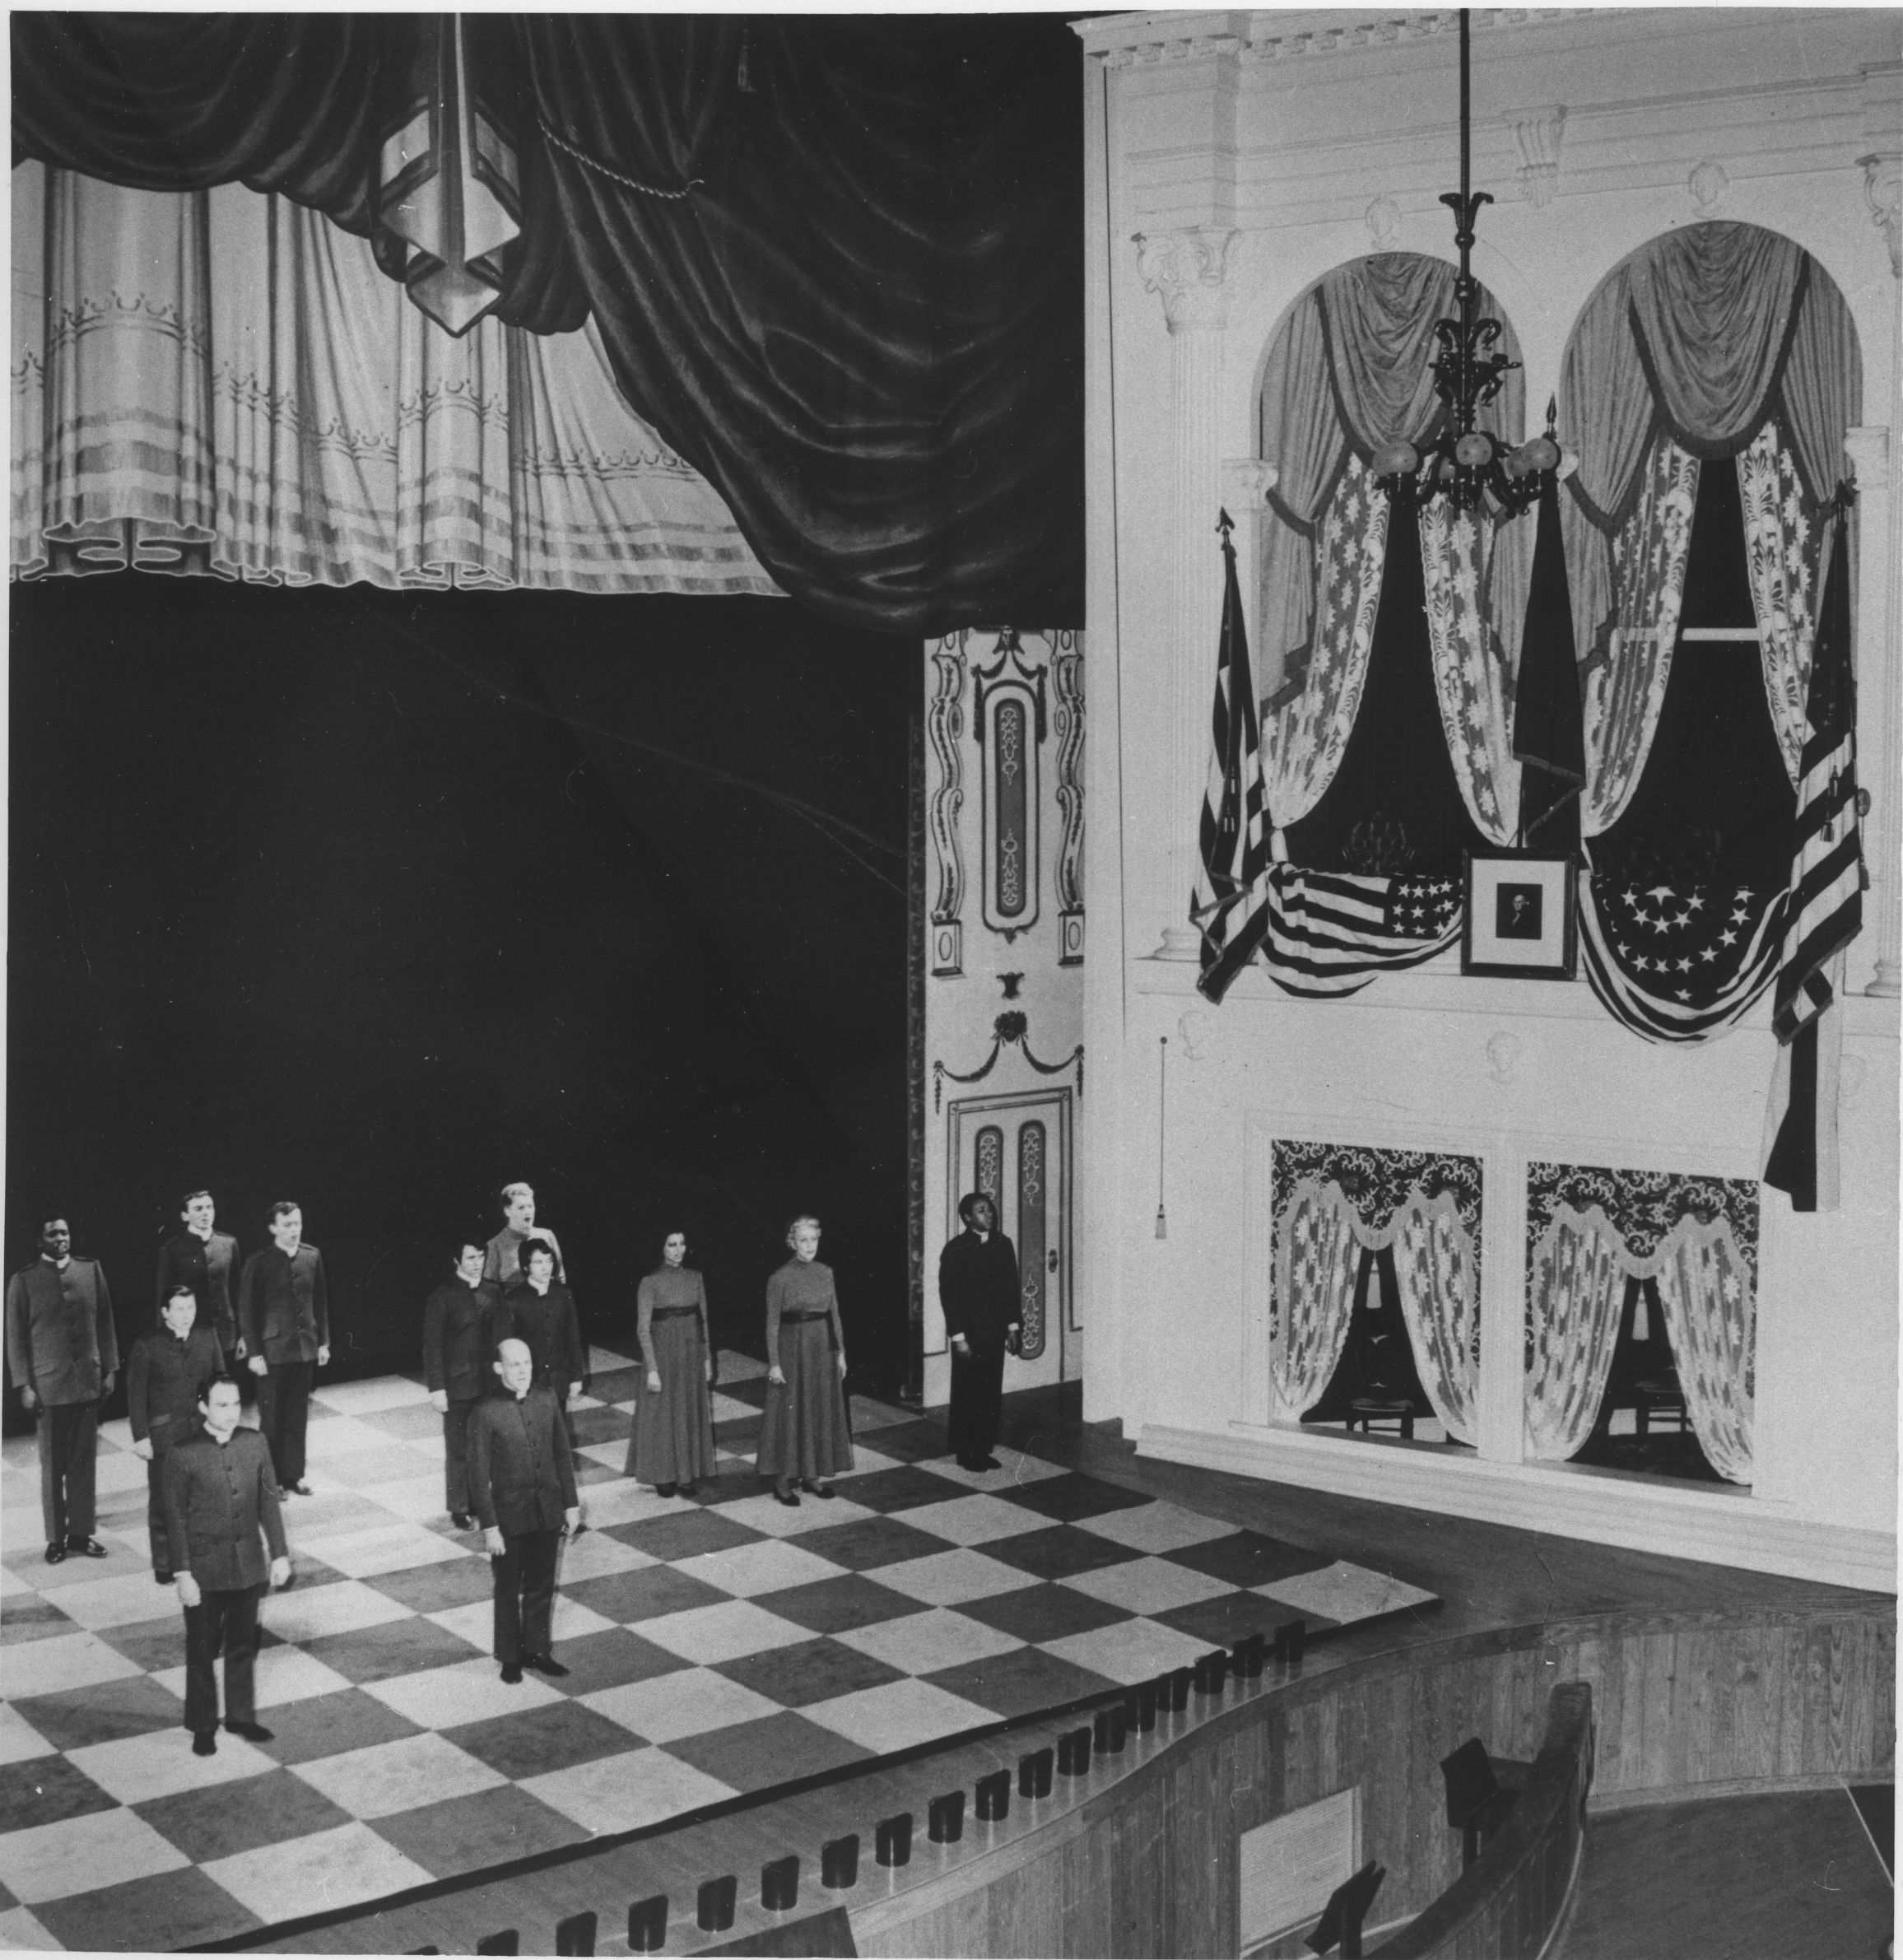 Image of the interior of Ford's Theatre and the cast of the 1968 production of  John Brown's Body dispersed across the stage.